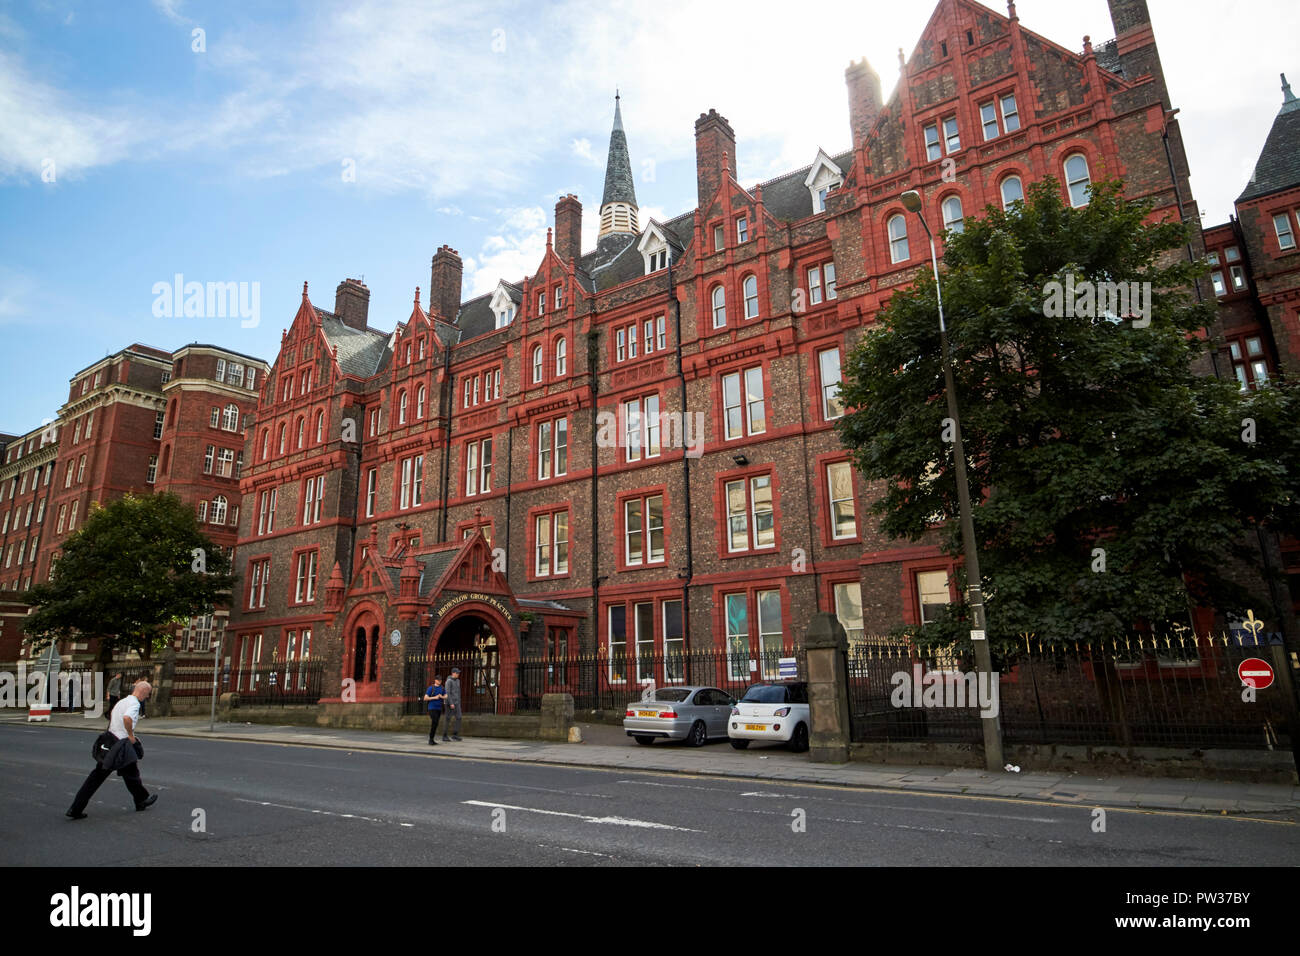 The Old Royal Infirmary now brownlow group practice building Liverpool Merseyside England UK - Stock Image